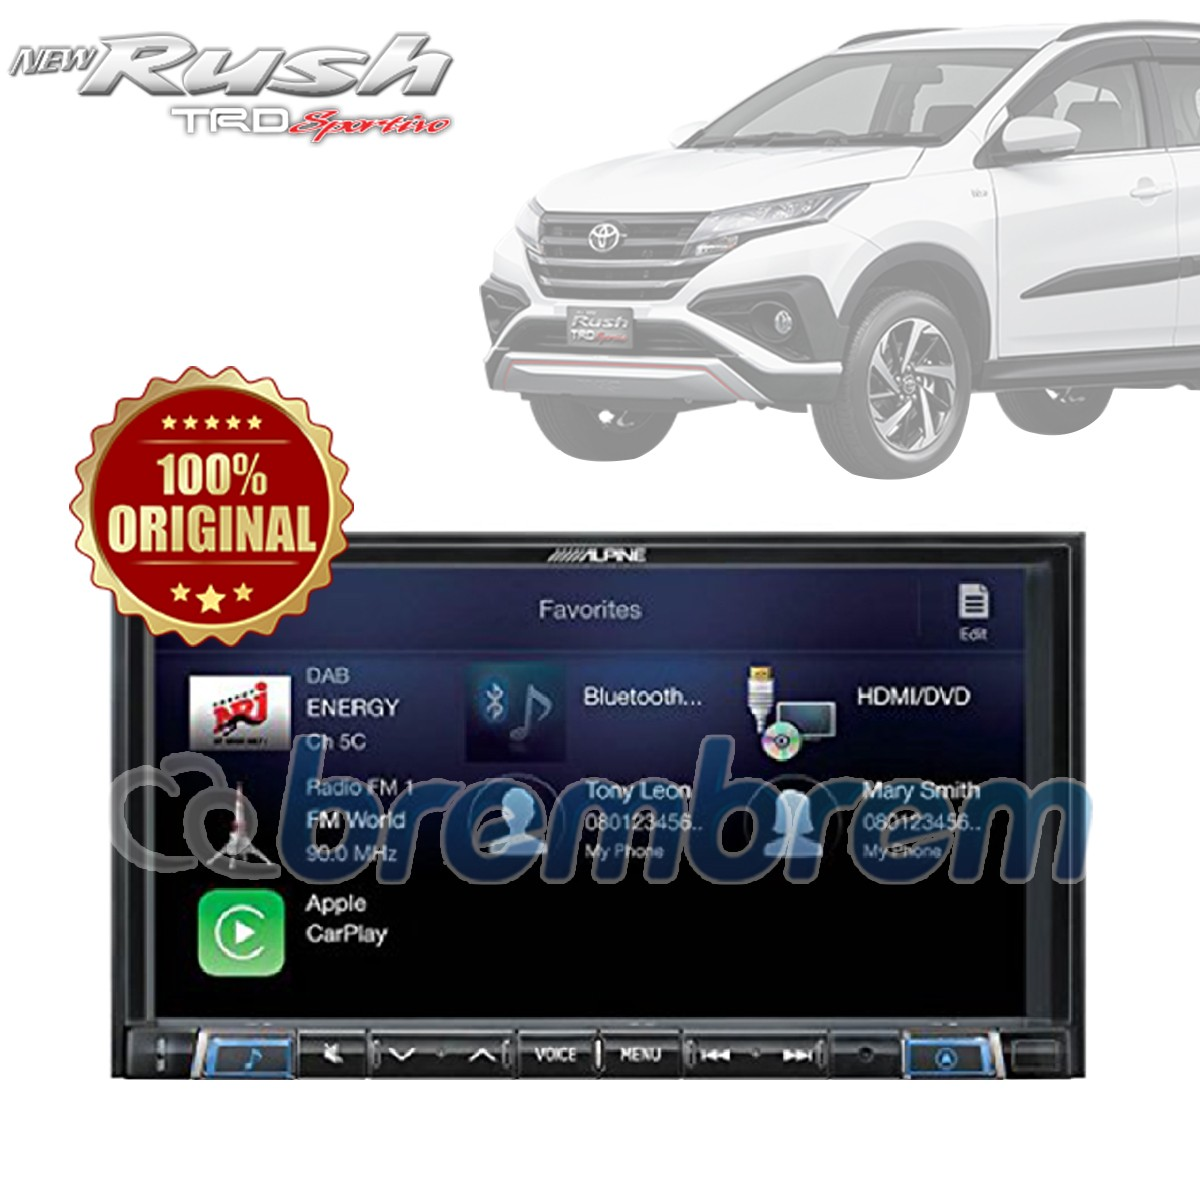 ALPINE iLX-702D - HEADUNIT DOUBLE DIN  TOYOTA ALL NEW RUSH + SOKET TOYOTA